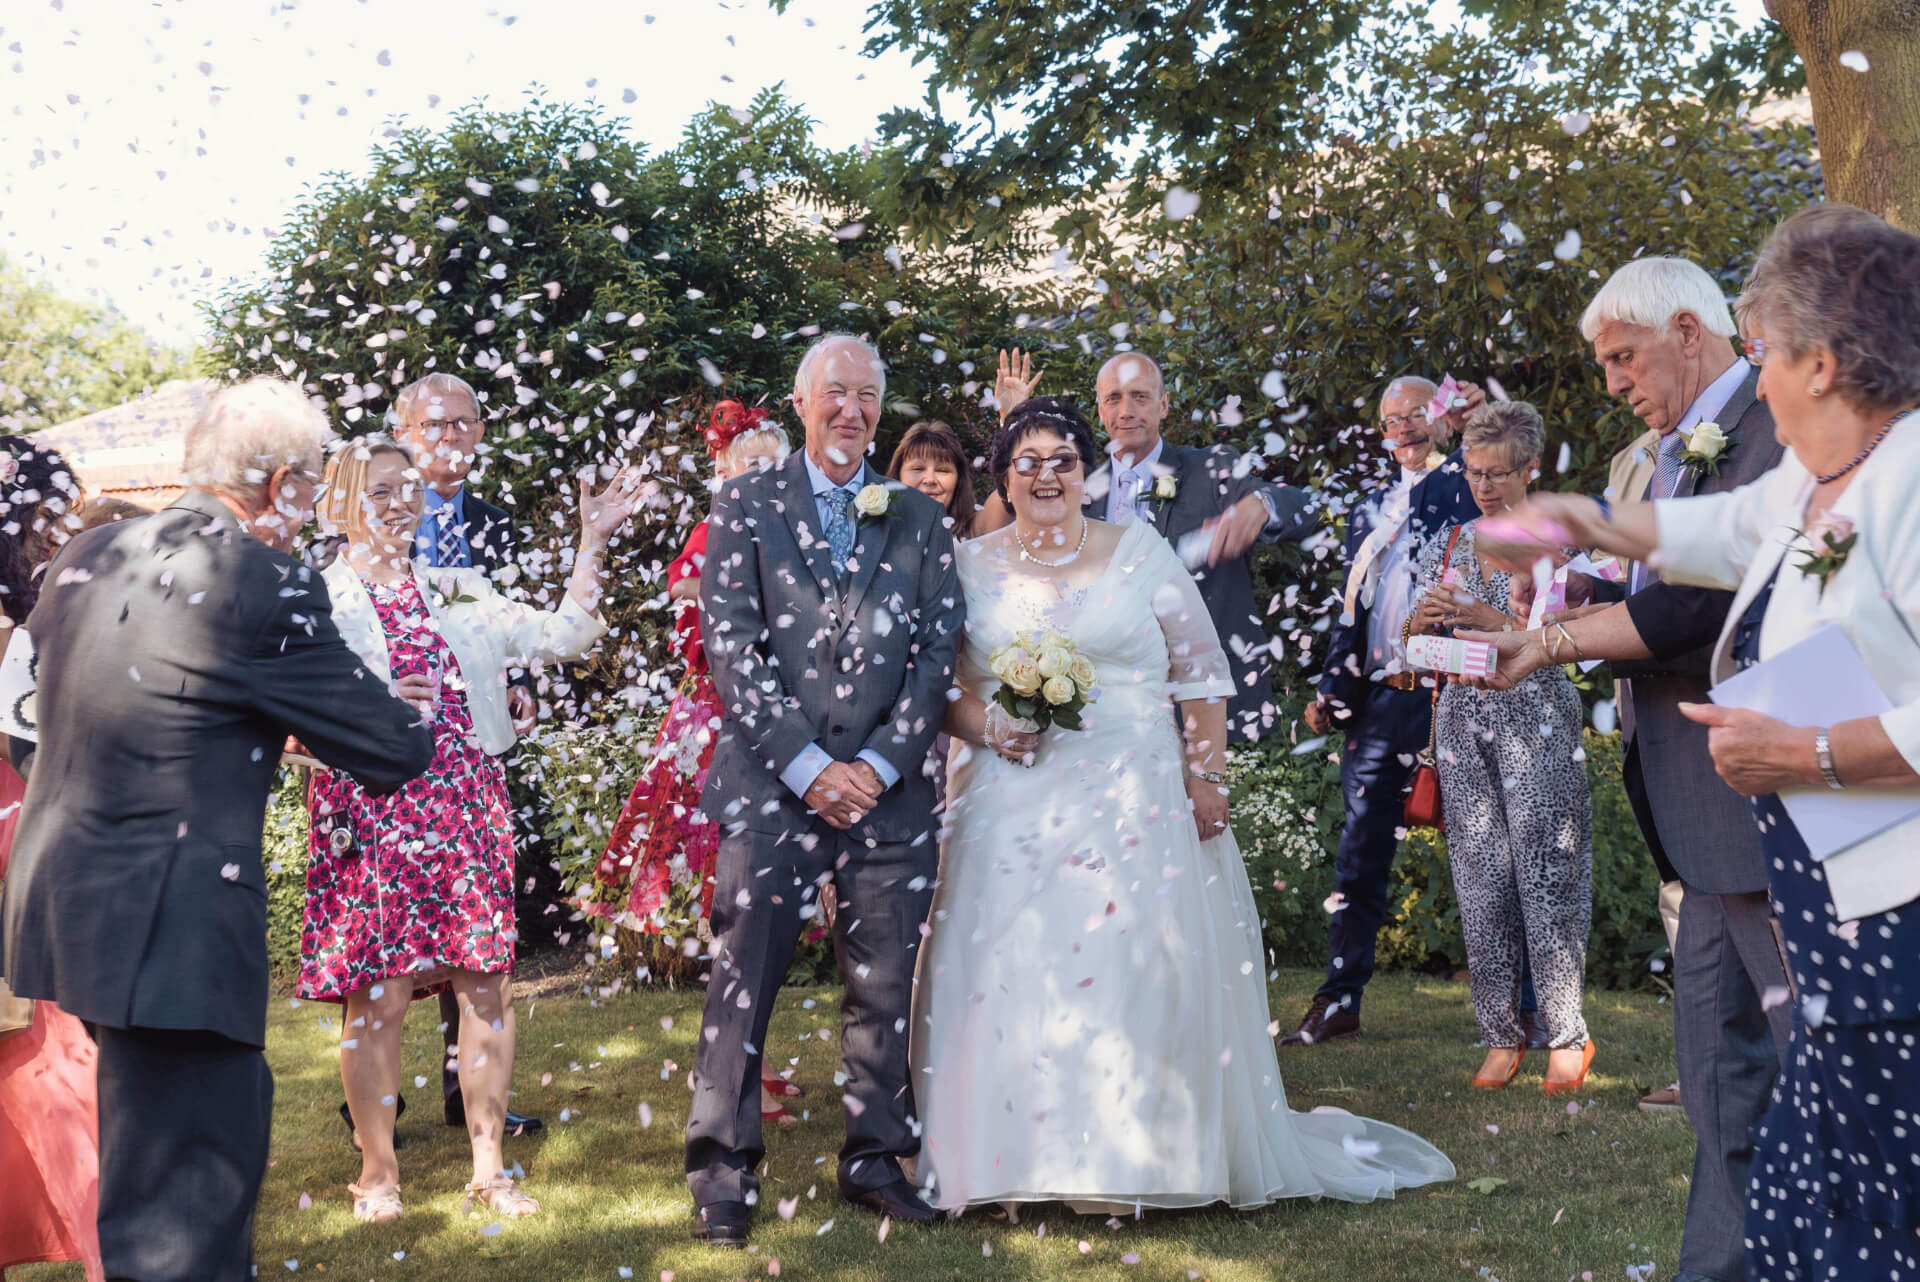 Wedding Guests throwing Confetti at the Bride and Groom at Woodlands Hotel - Wedding Photography by Slice of Life Photography